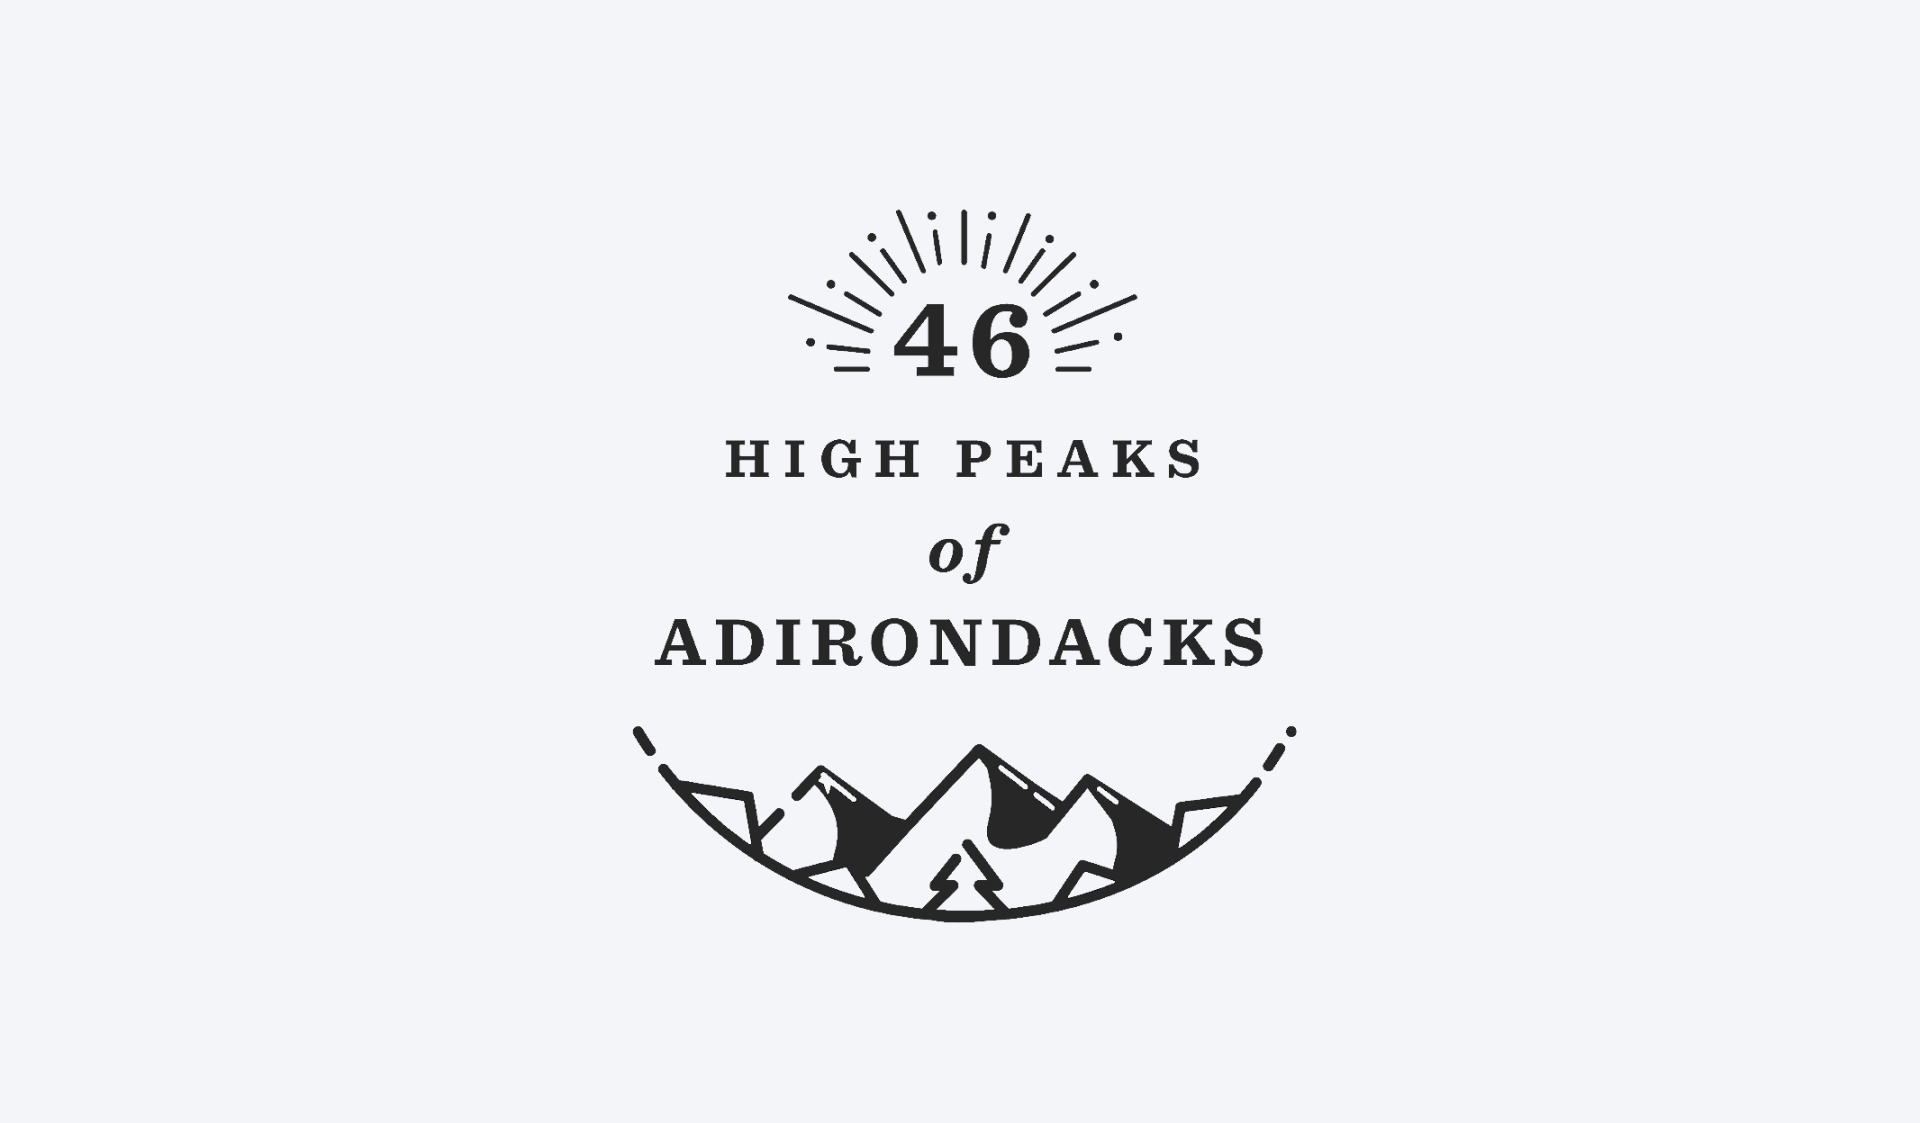 zeki-michael-adirondacks-ny-full-circle-high-peaks-46-supply-co-adirondacks-detail